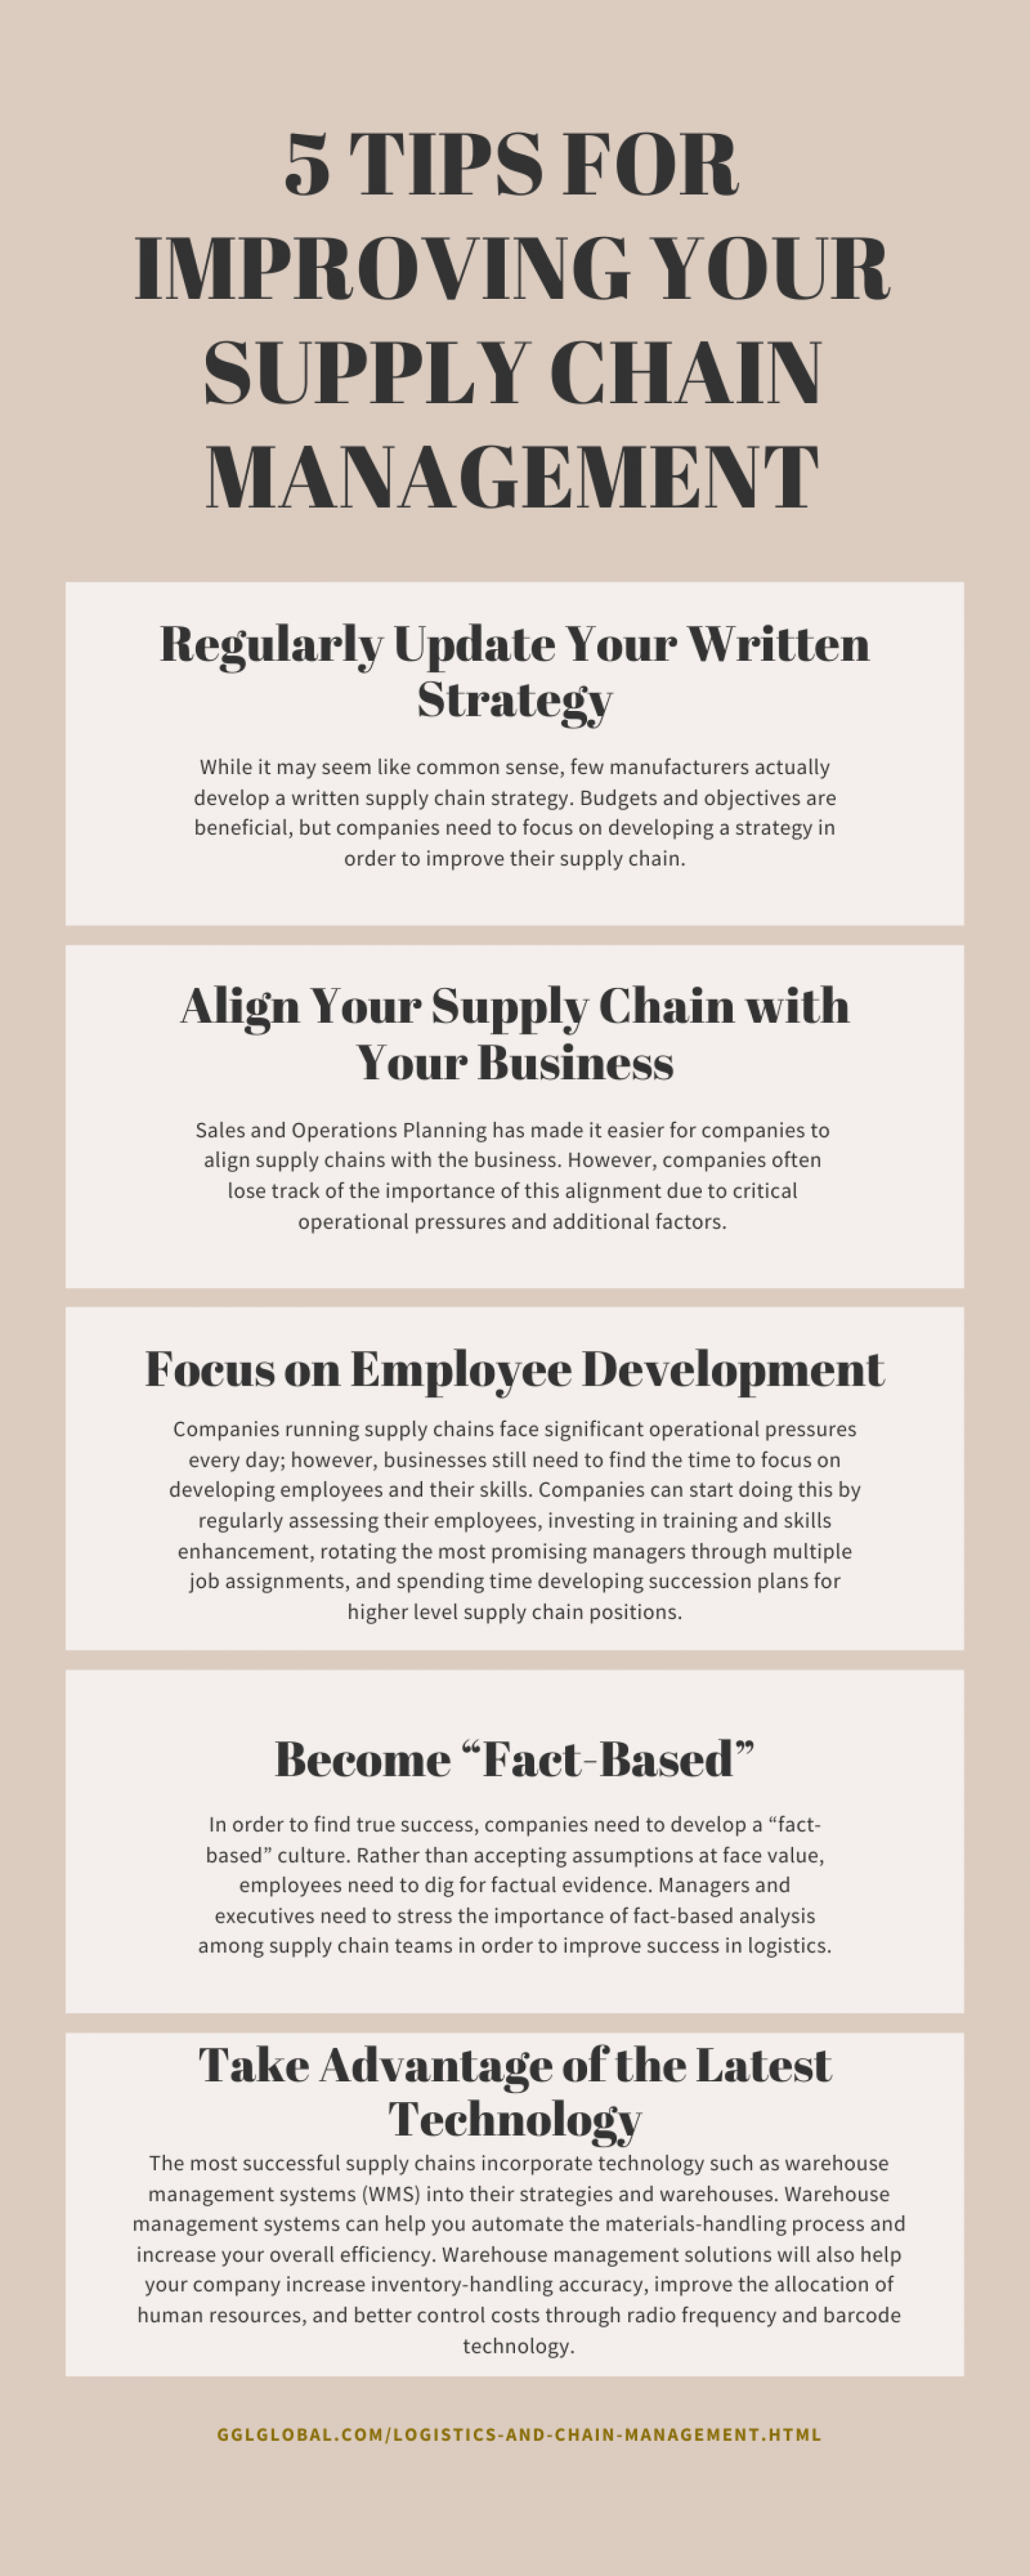 5 TIPS FOR IMPROVING YOUR SUPPLY CHAIN MANAGEMENT. Infographic